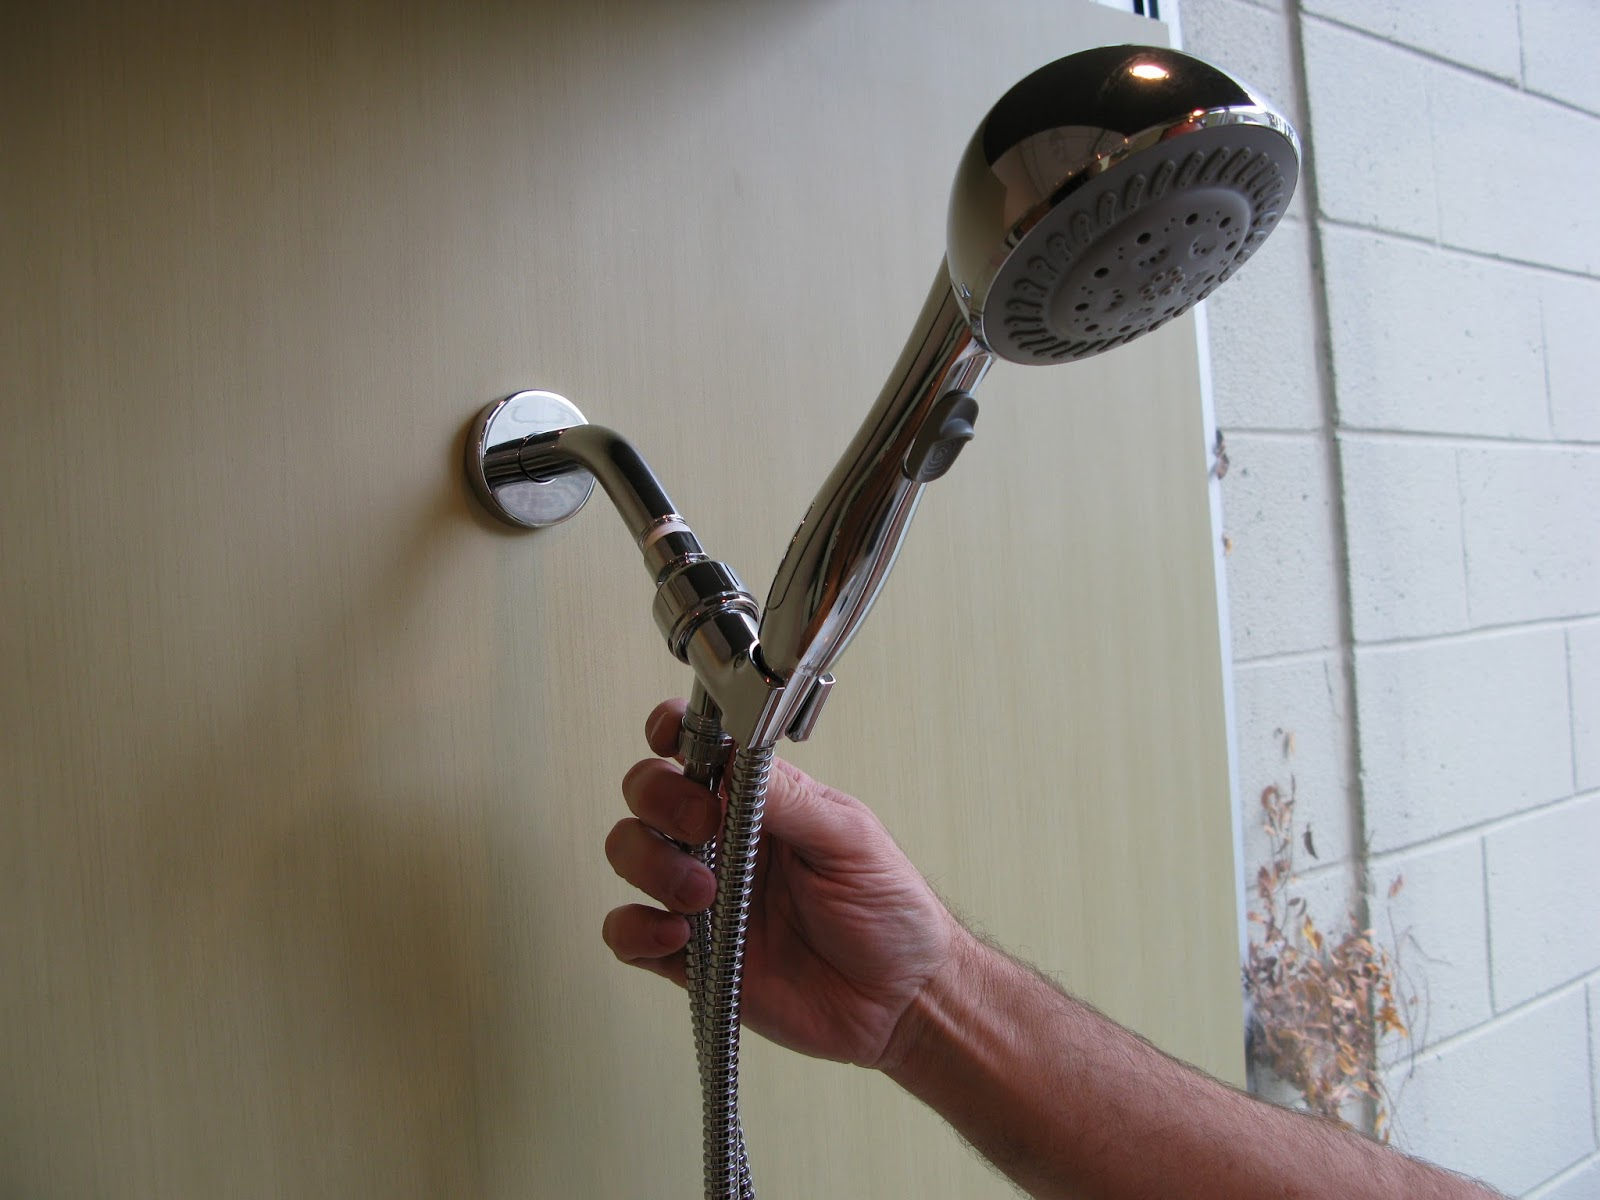 hand held versus fixed shower heads u2013 which is best